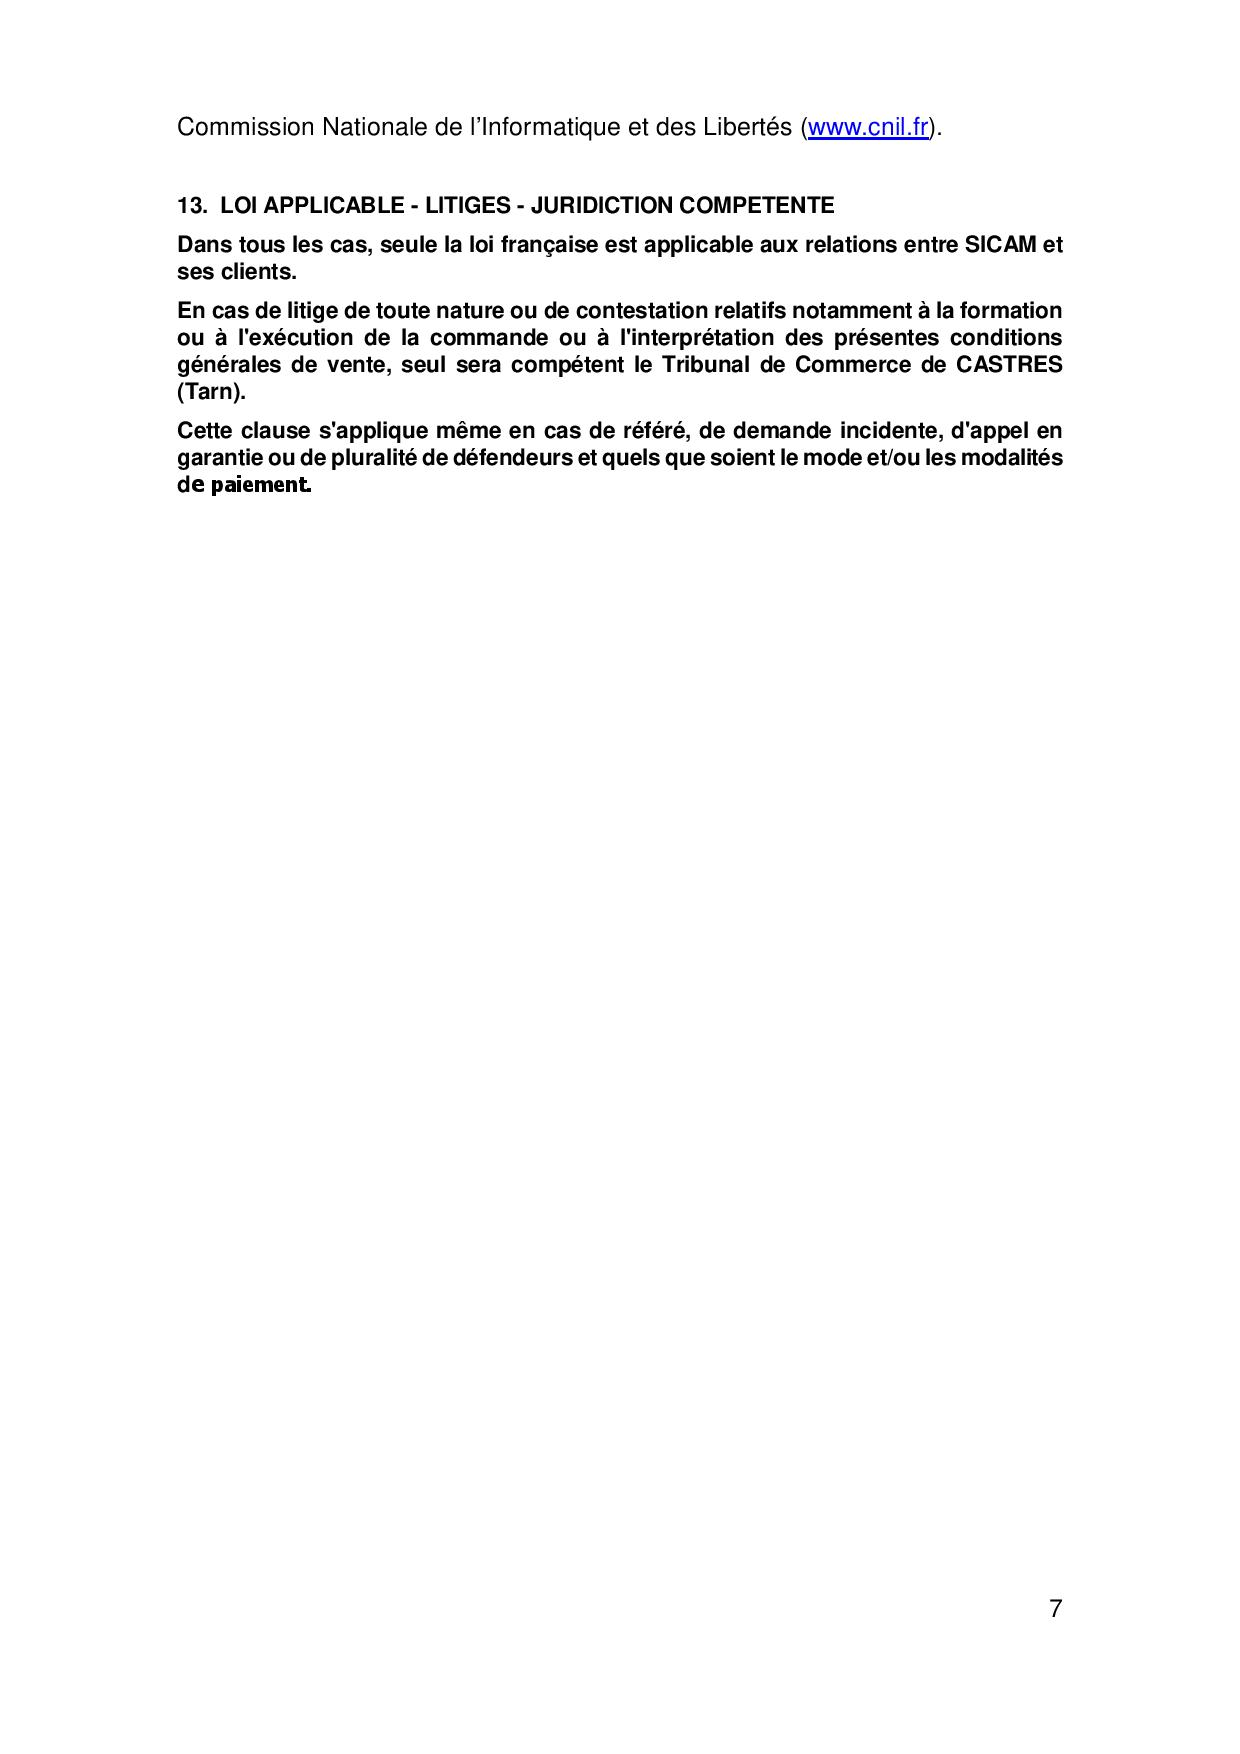 Cdts. Gn. Vte. 2019 Sicam.doc Page 007